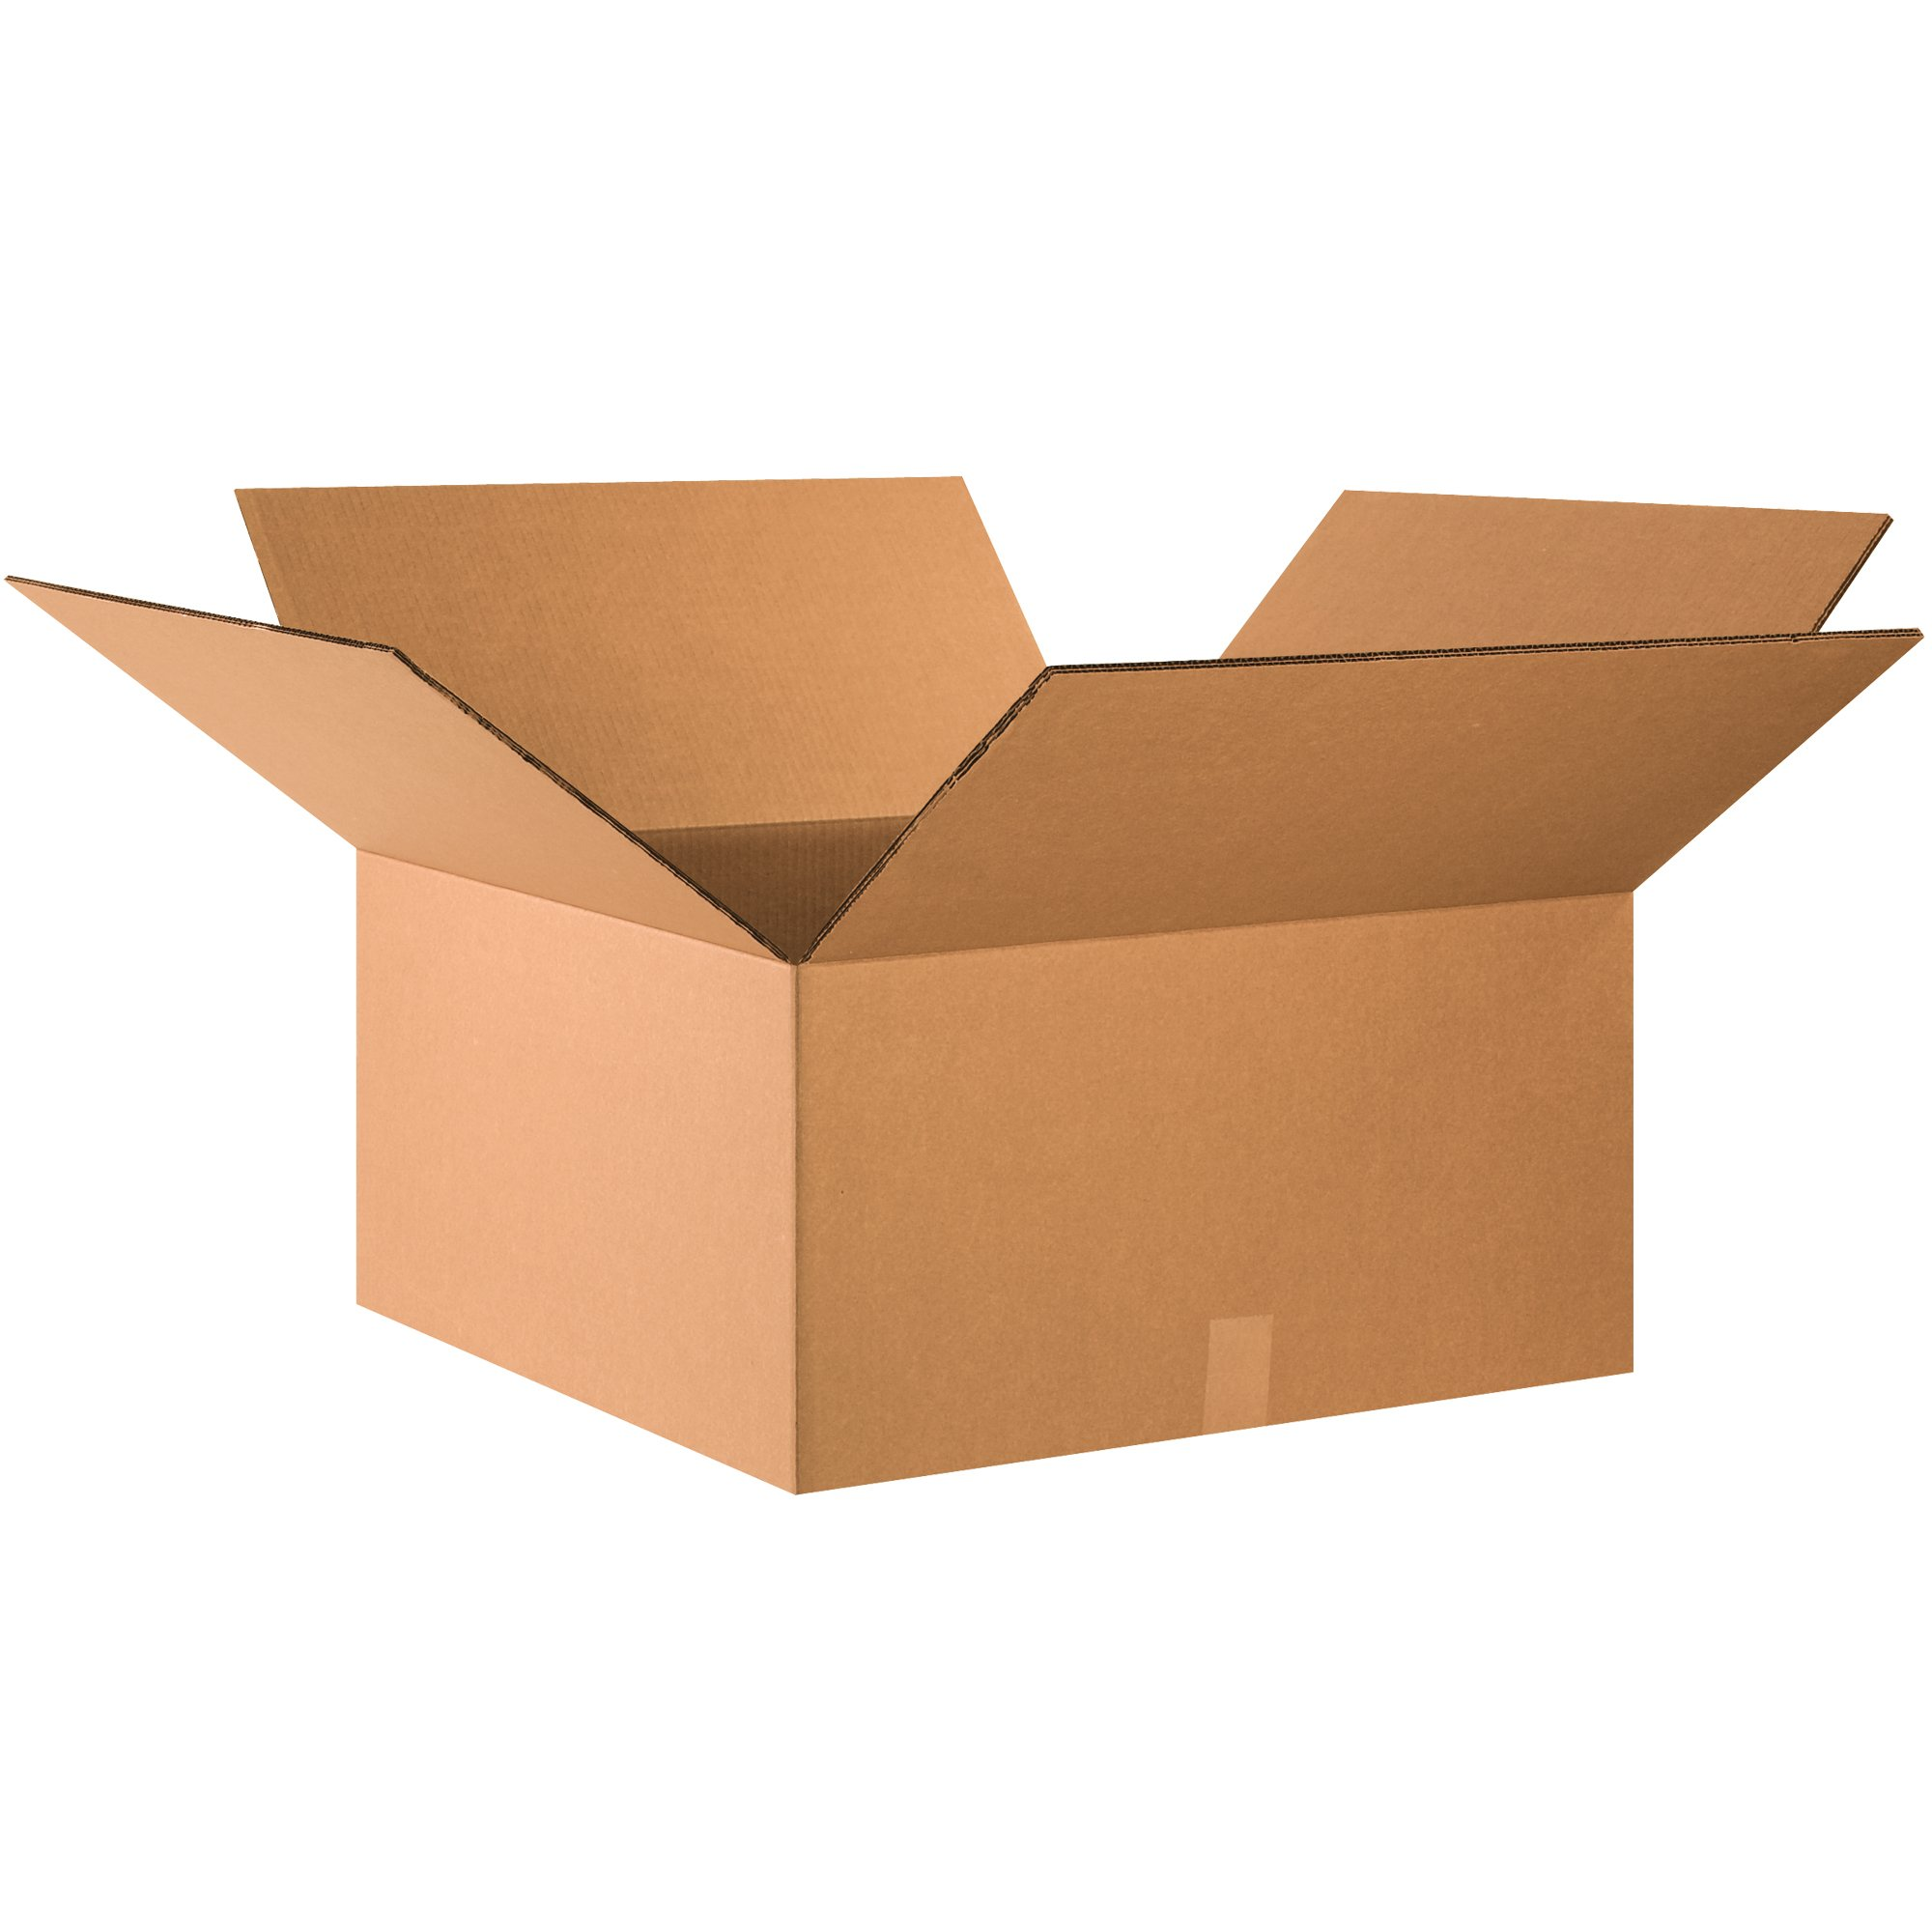 Boxes Fast BFHD262612DW Double Wall Corrugated, Heavy-Duty Cardboard Boxes, 26'' x 26'' x 12'', for Shipping, Packing and Moving Protection, Kraft (Pack of 10)